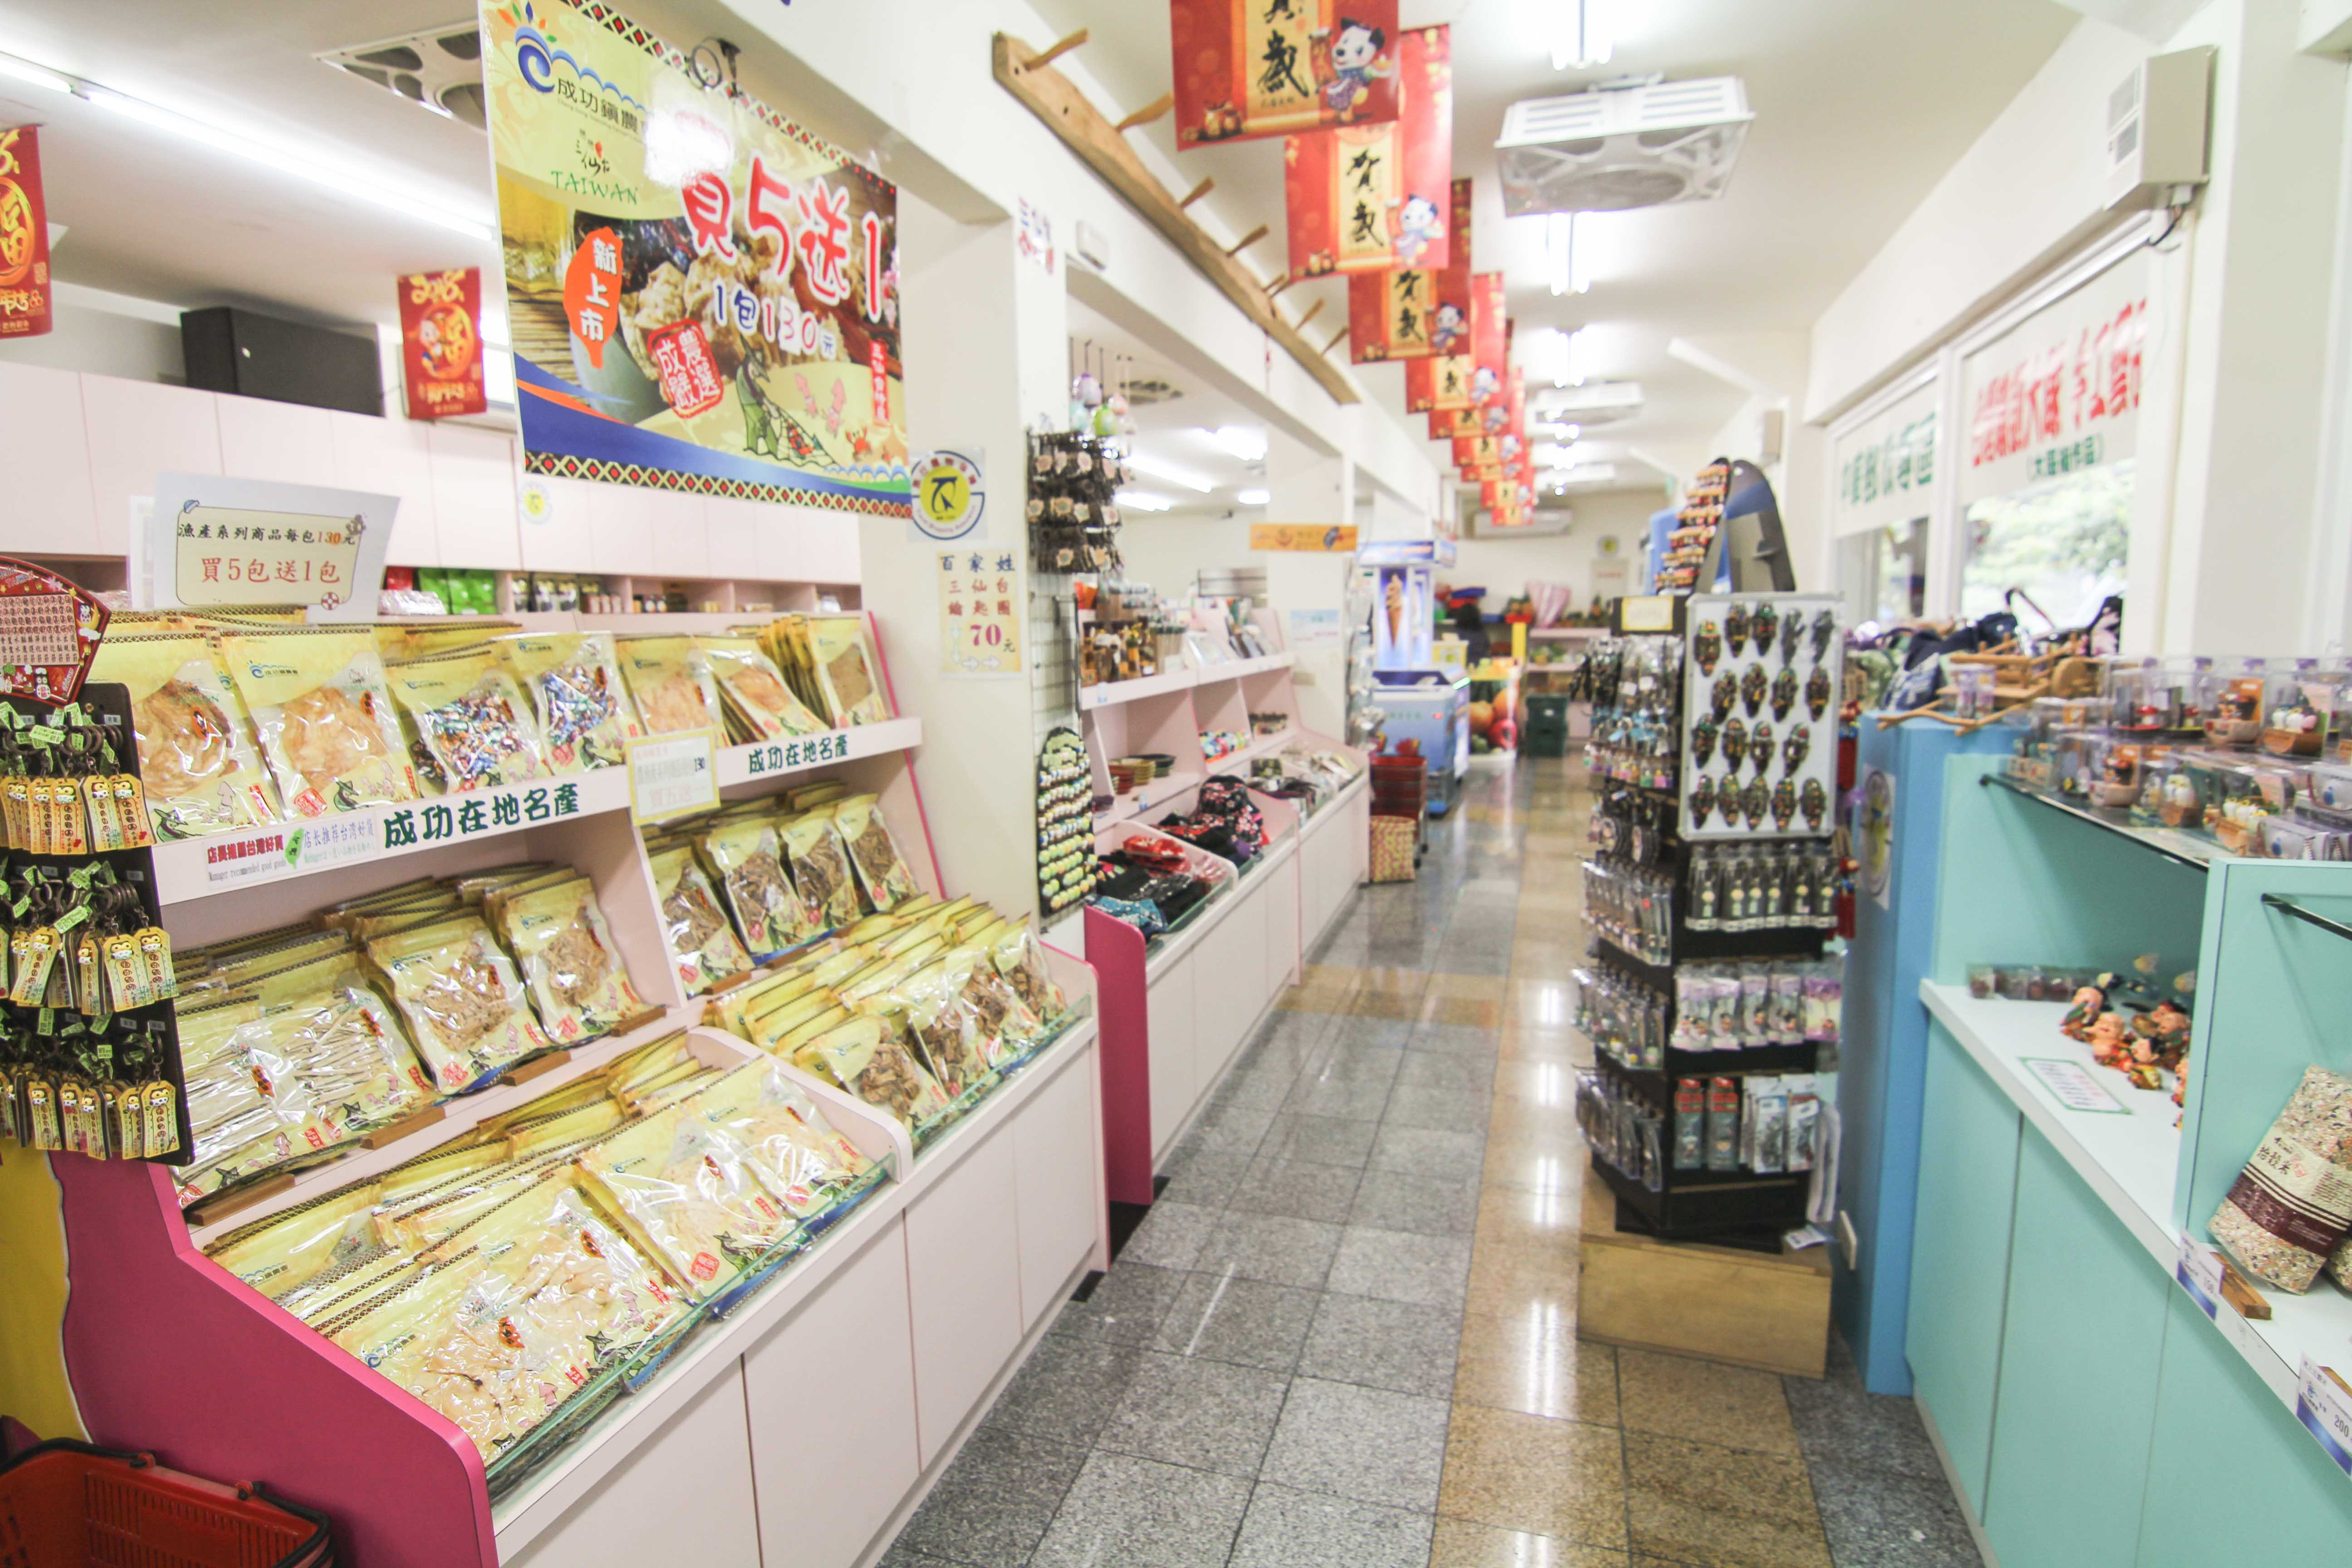 Interior View Of Store.